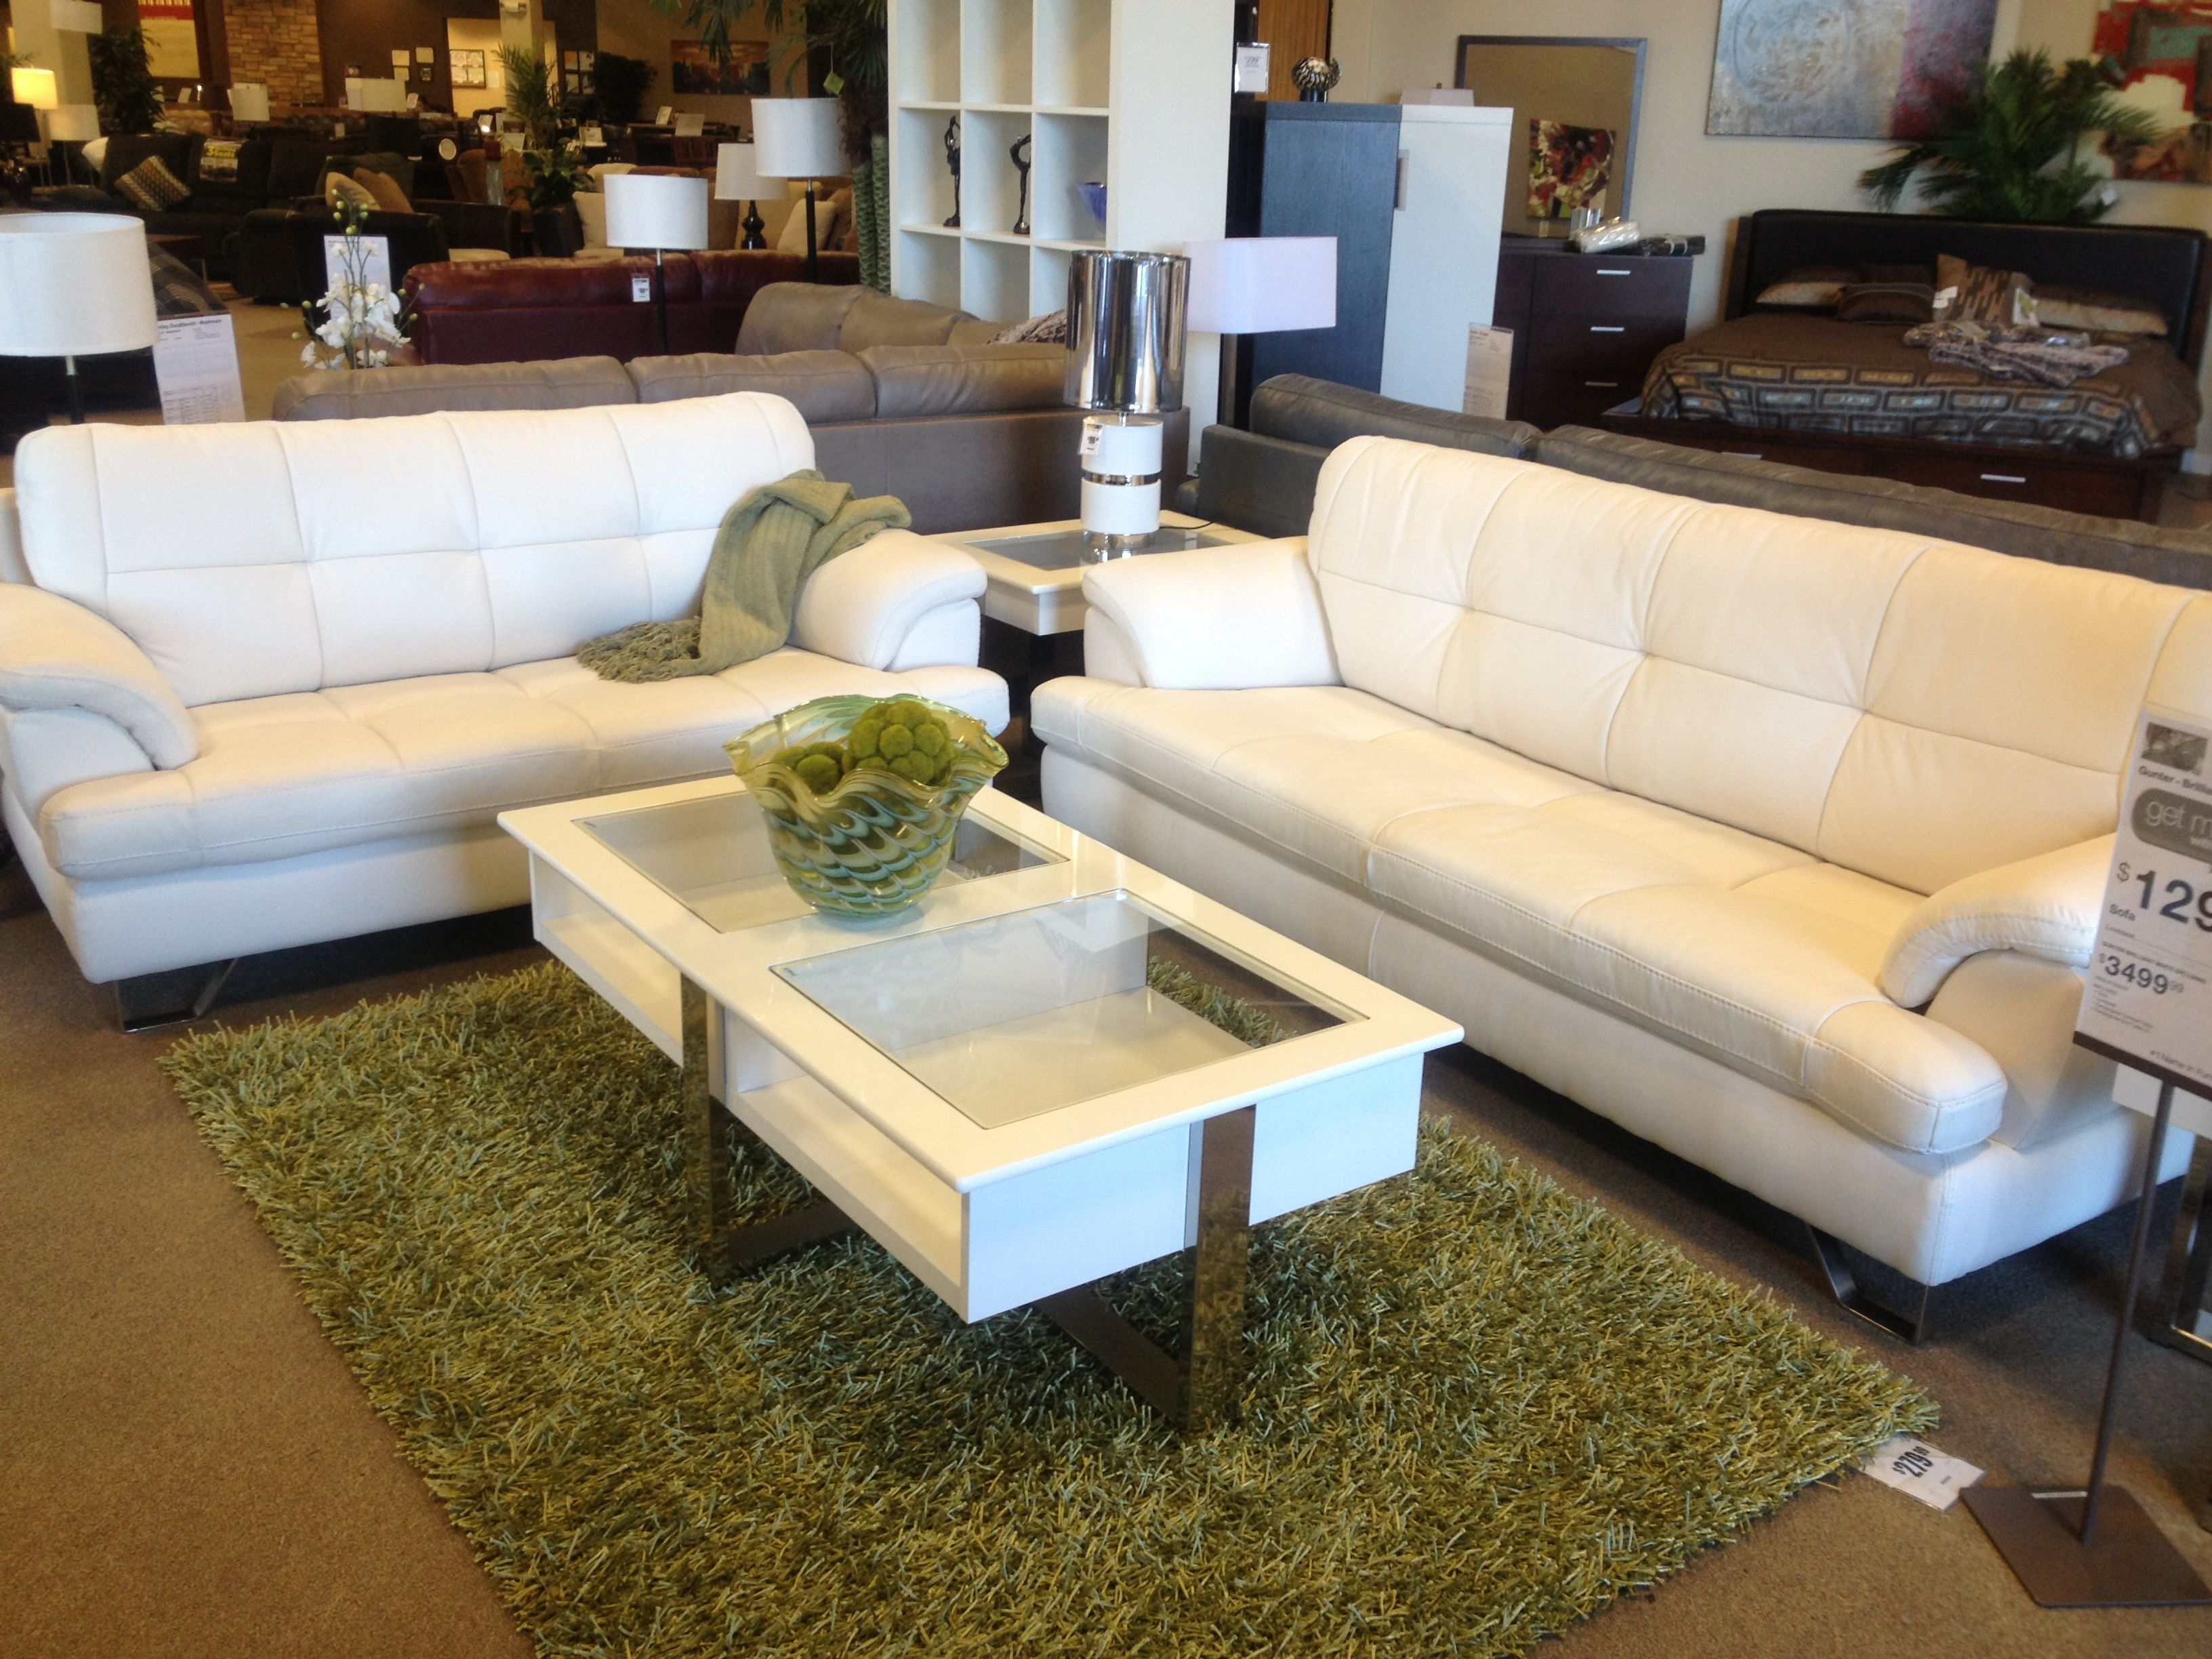 Remarkable White Leather Couch White Coffee Table Love Leather Ibusinesslaw Wood Chair Design Ideas Ibusinesslaworg